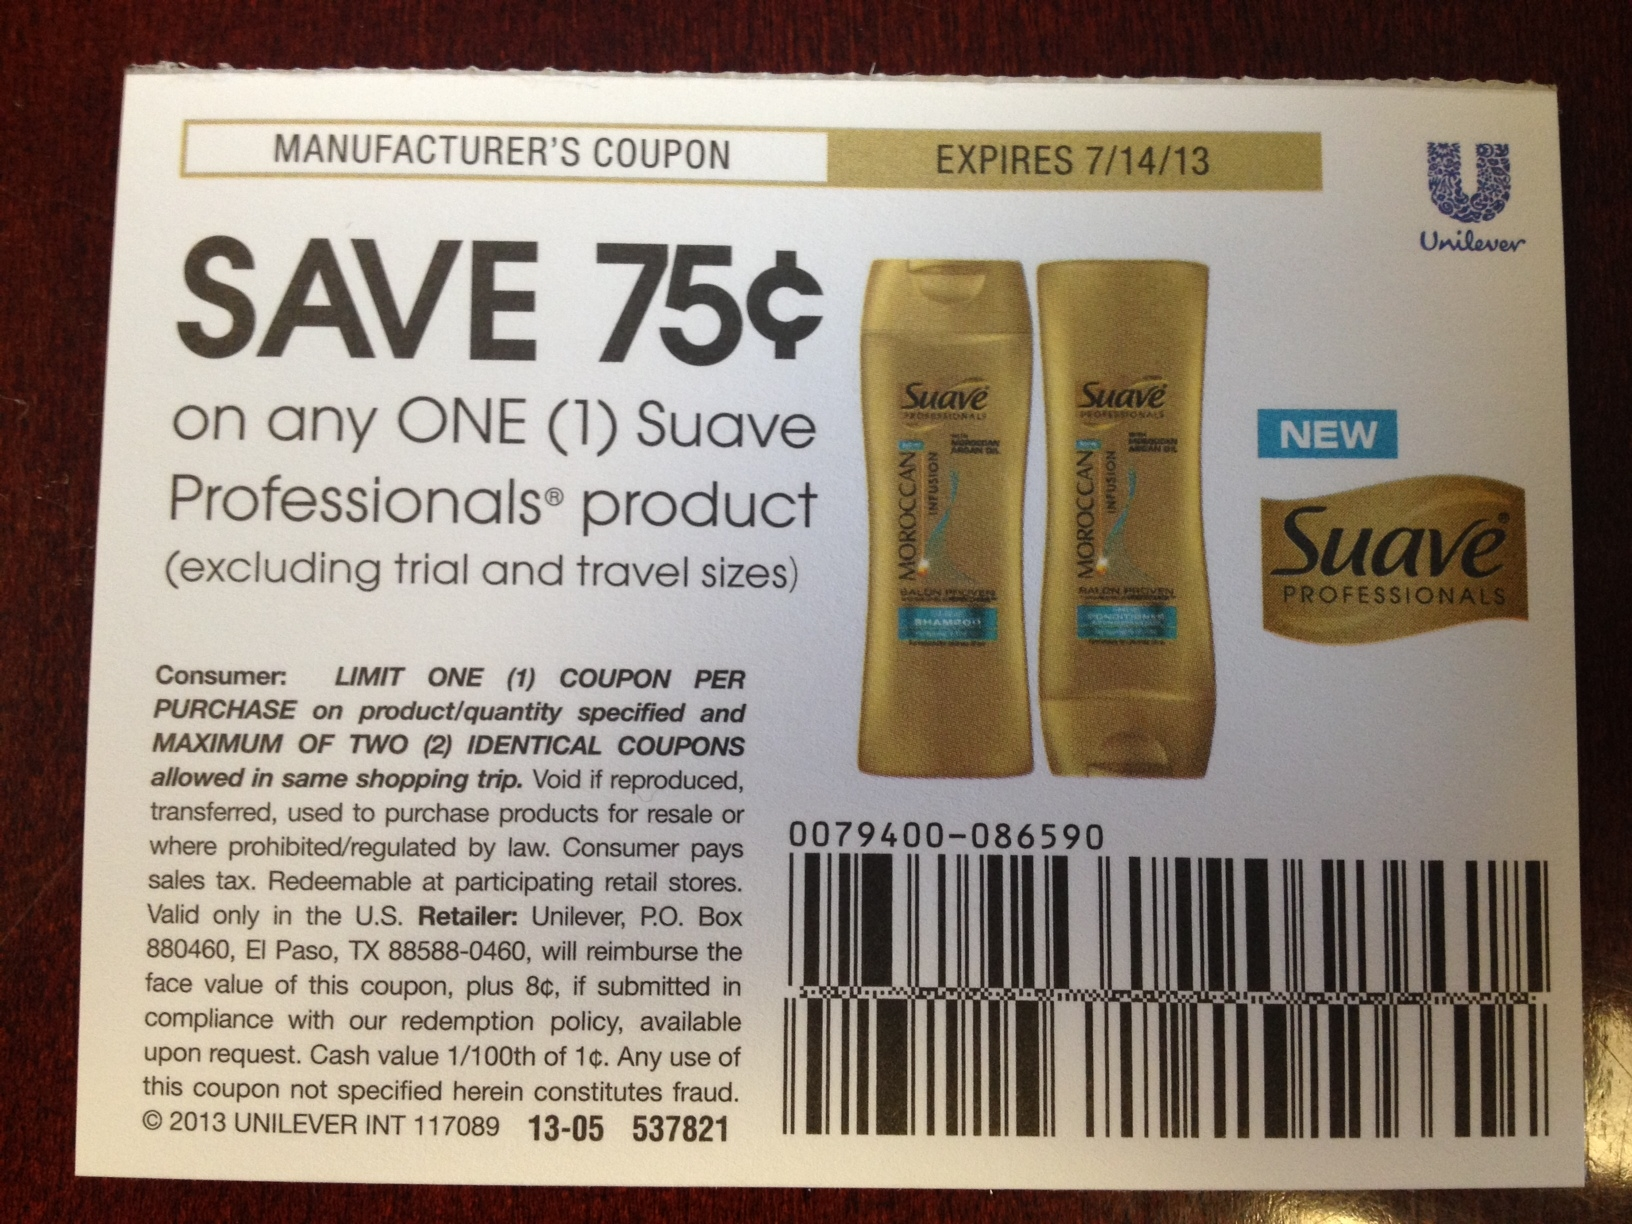 photograph regarding Suave Printable Coupons titled Clever hair treatment printable coupon codes - Firestone oil variation